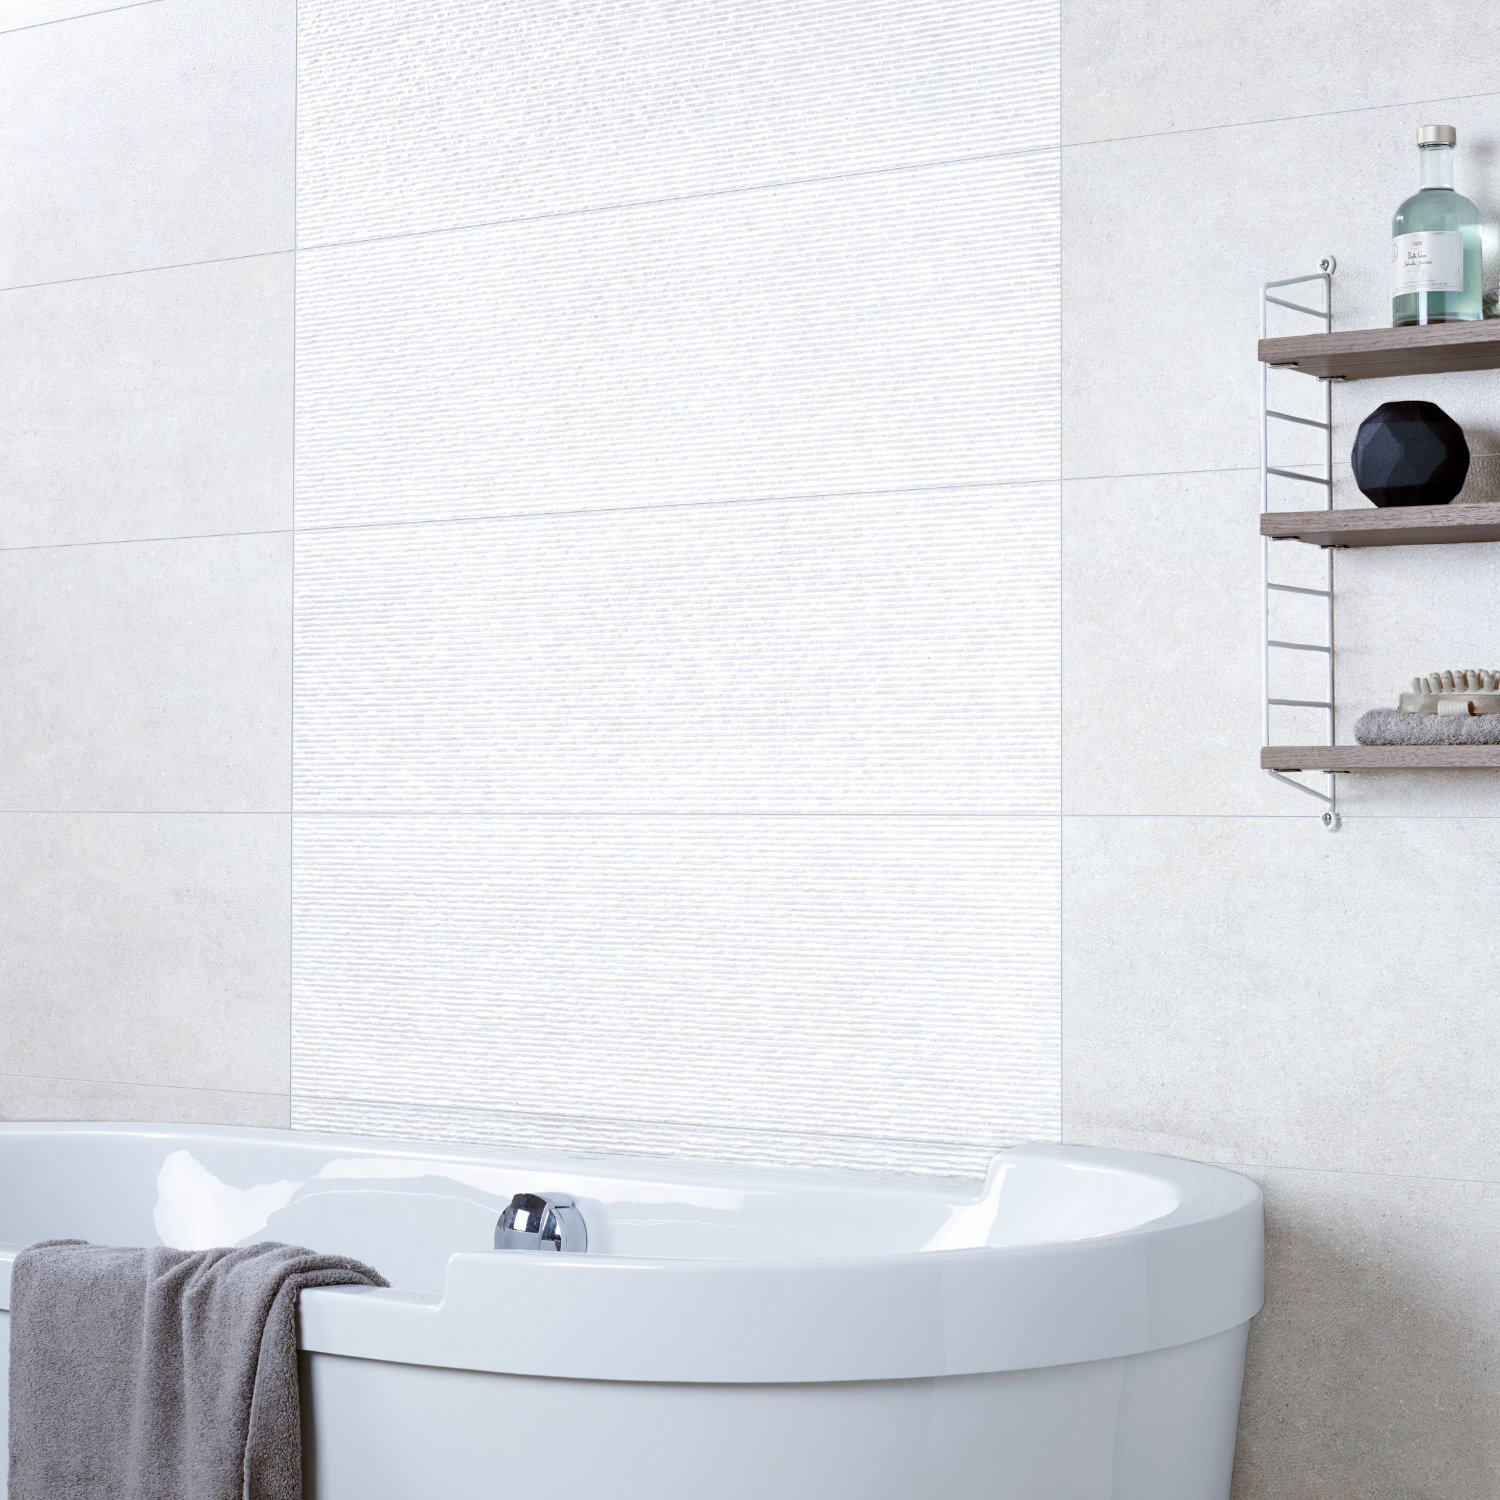 Stratus - Wall - Tile & Stone Gallery